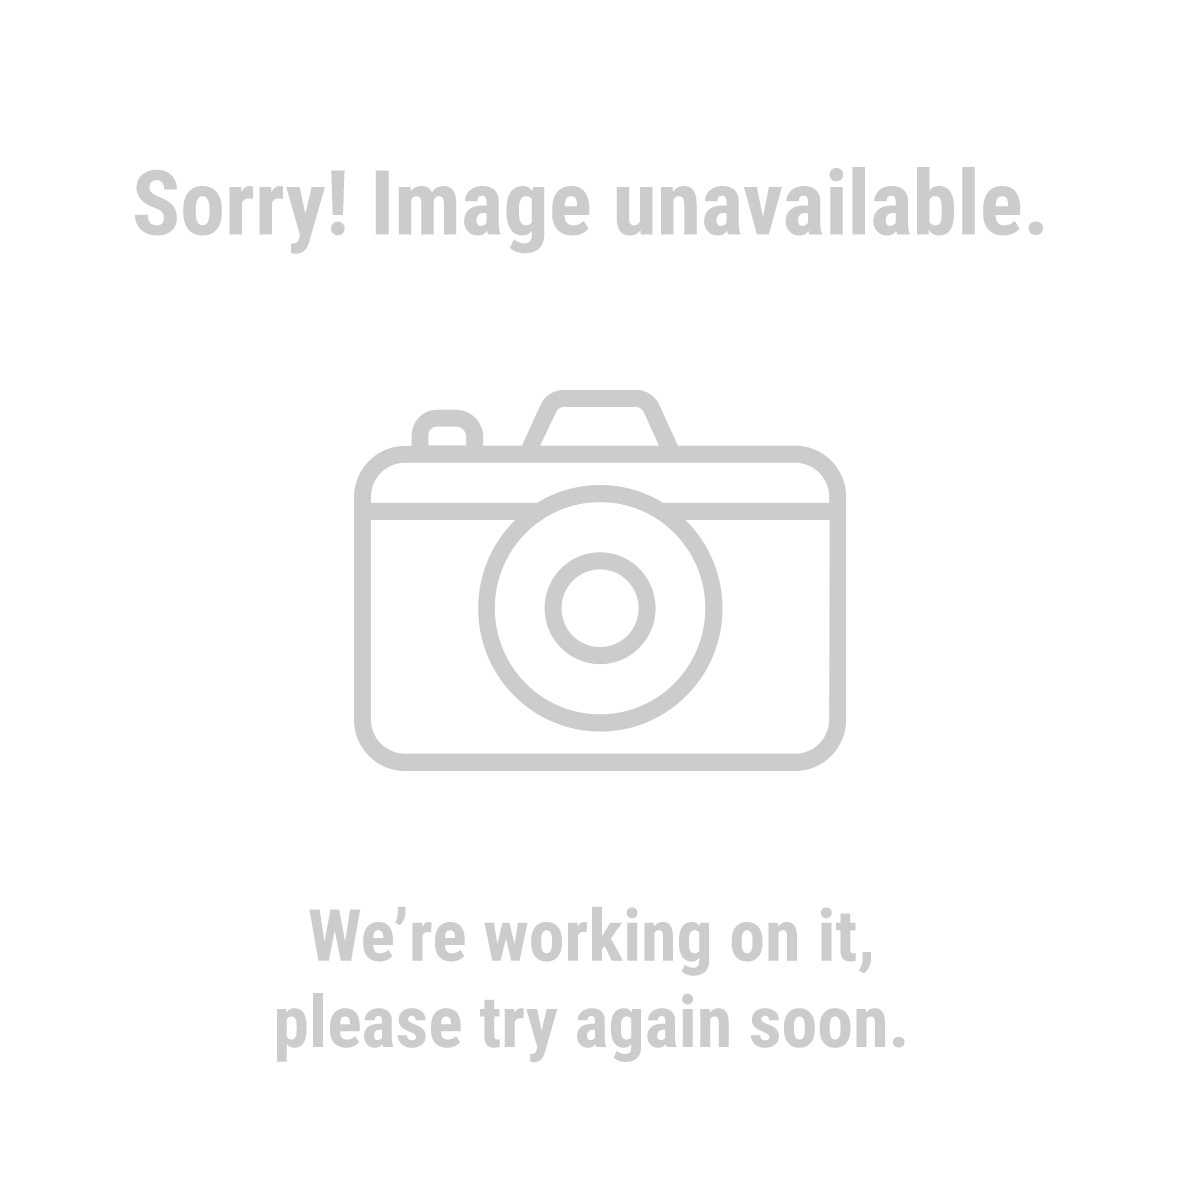 Drill Master 32926 29 Piece 135° Split Point Titanium Nitride Coated Drill Bit Set